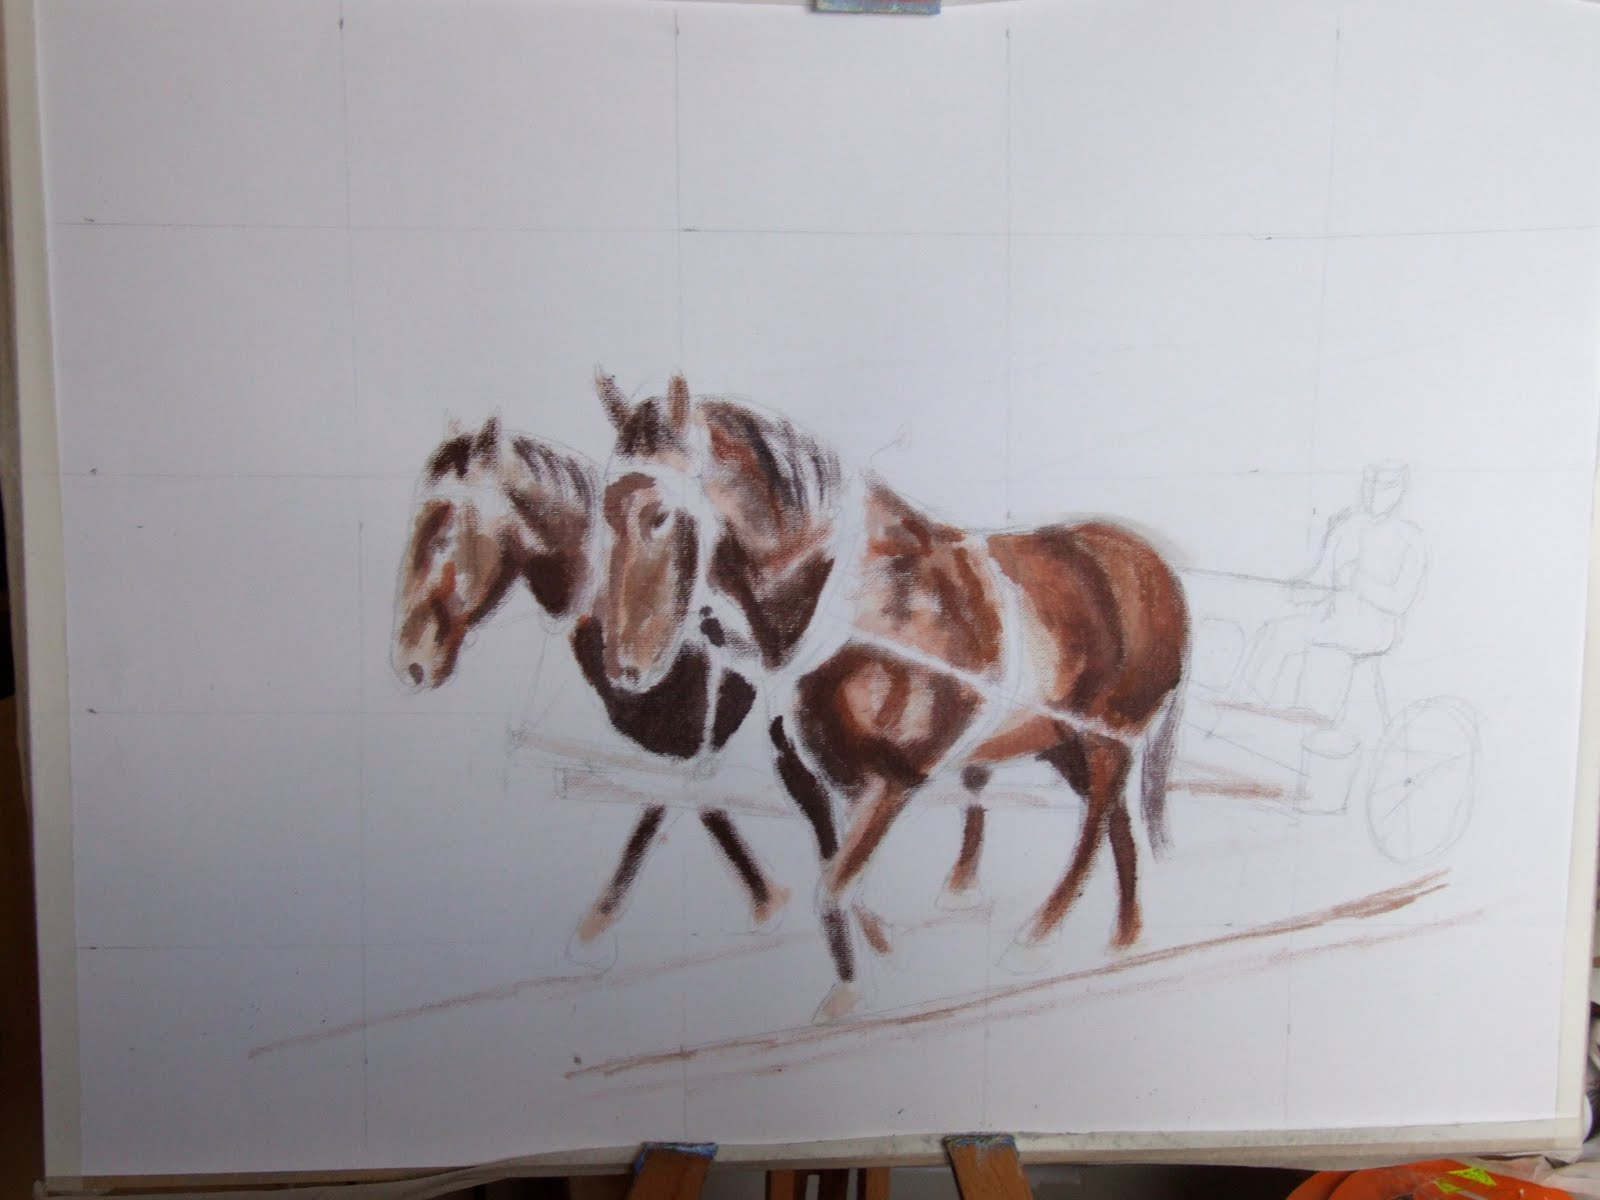 Plough horse oil painting step 3